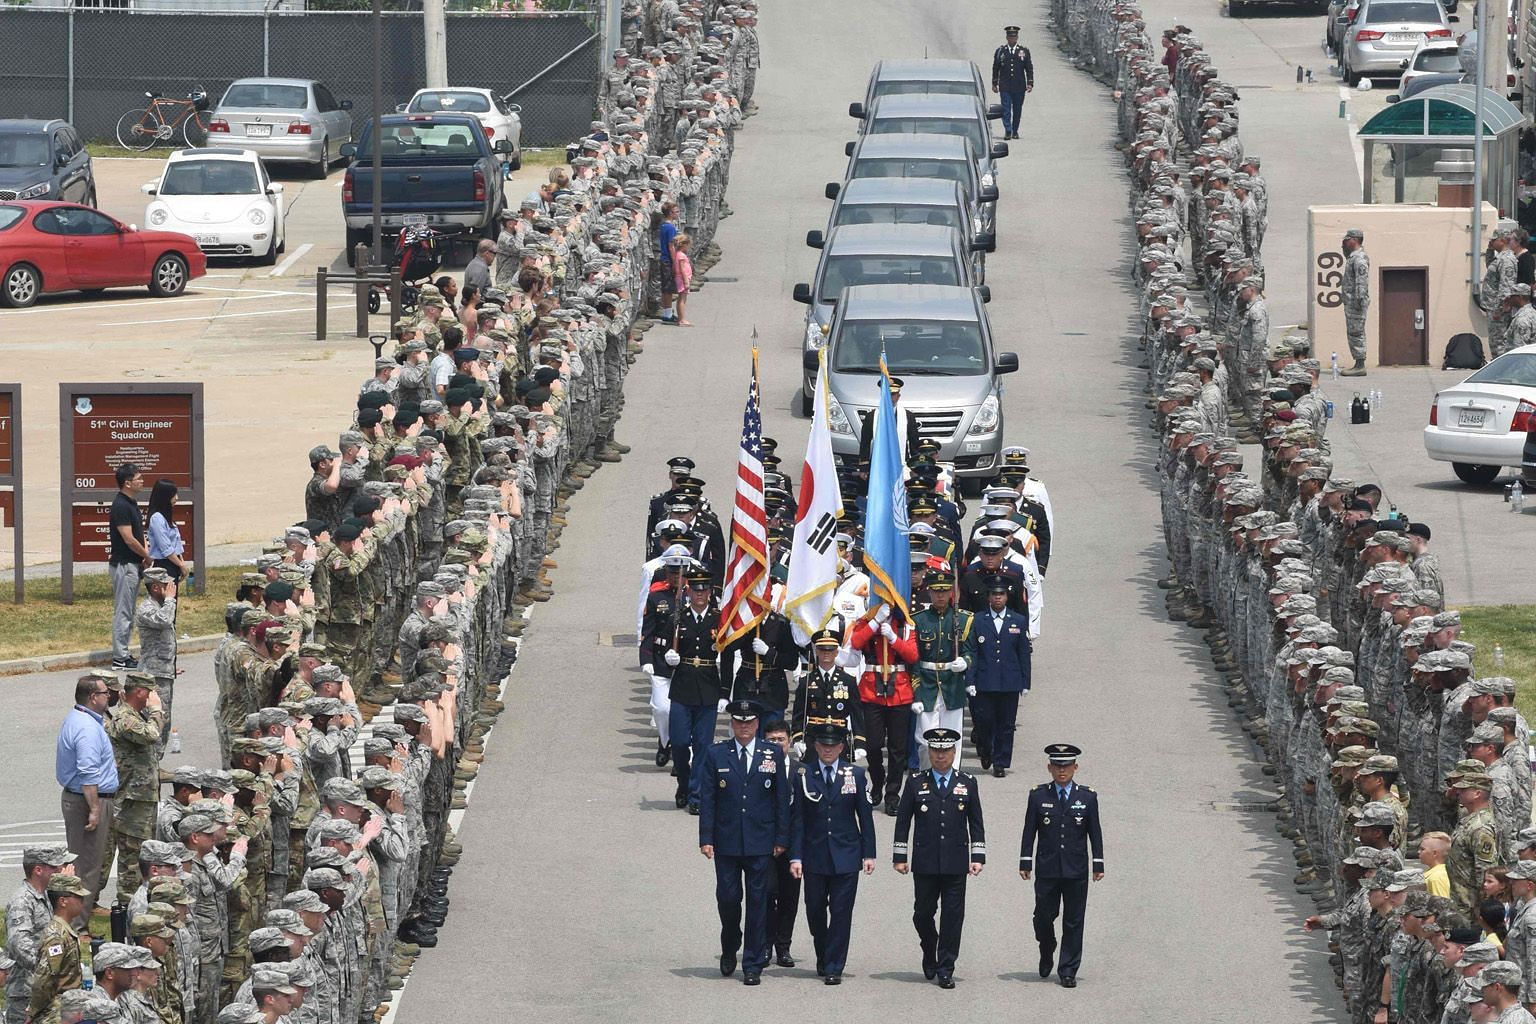 A United Nations Honour Guard member carrying the remains of a US soldier at Osan Airbase yesterday. The return of the soldiers' remains marks the first tangible step in implementing a landmark agreement reached between the US and North Korea at the